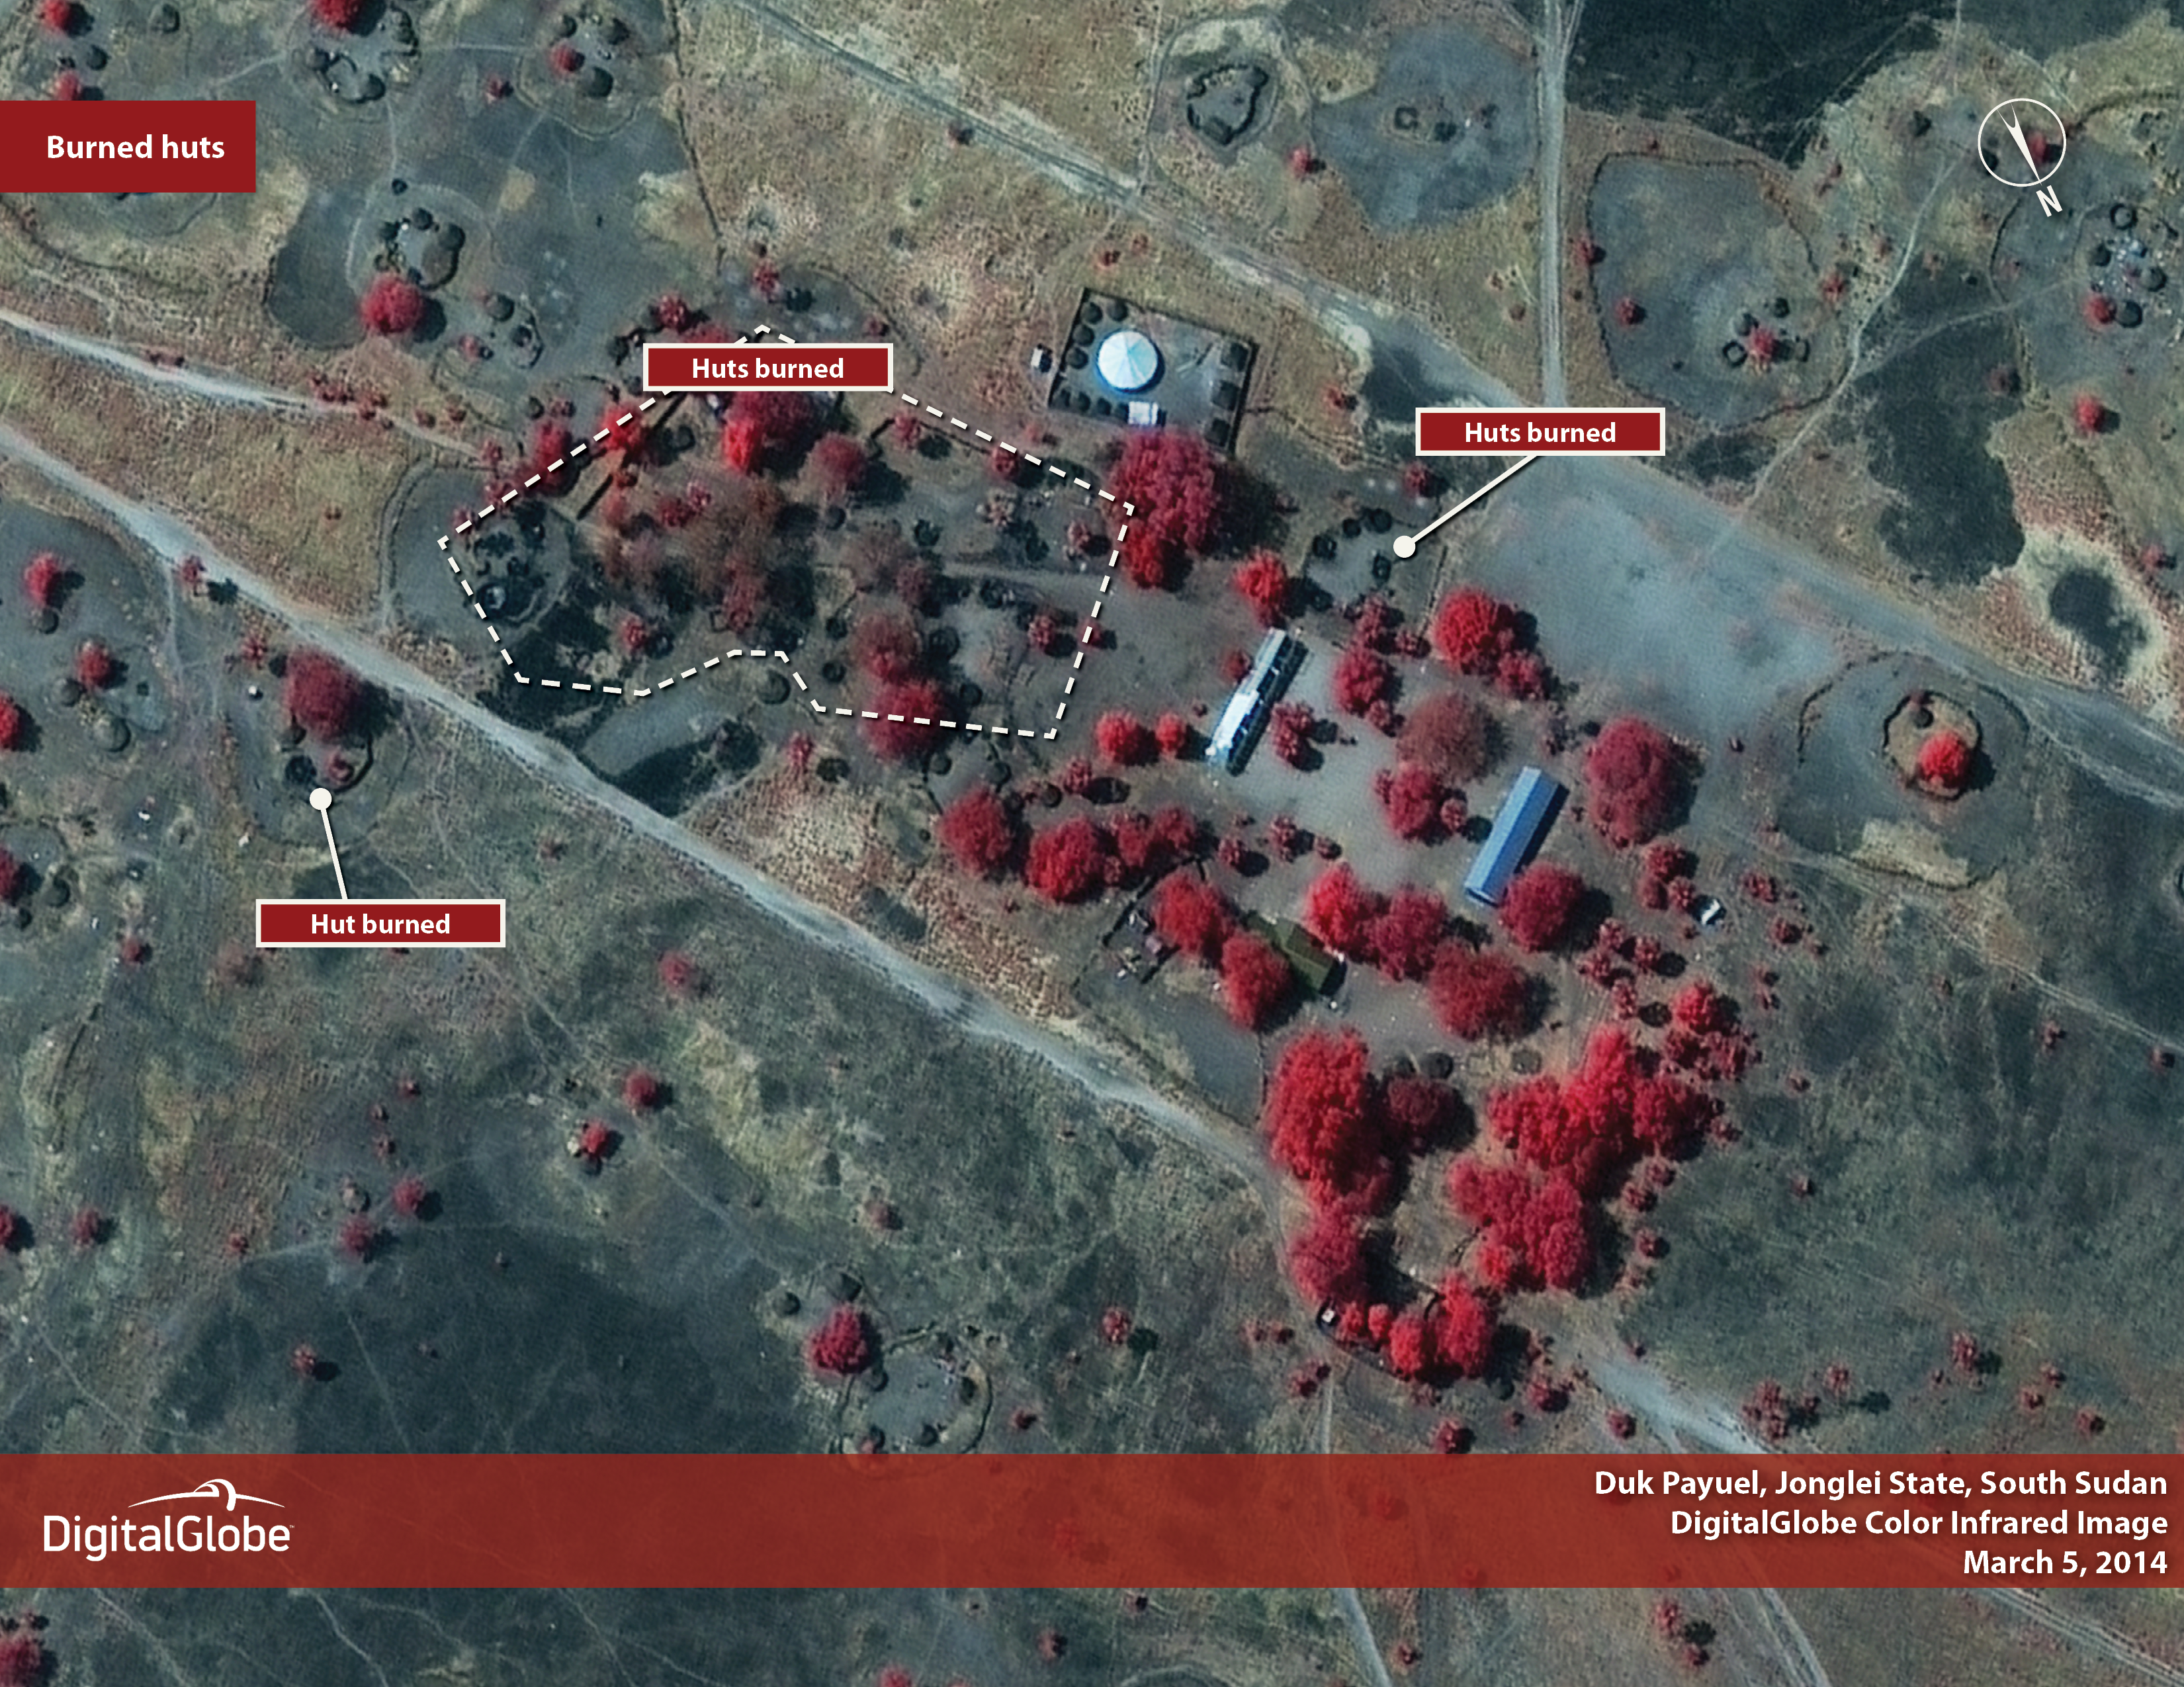 IMAGES 4 and 5: Destruction and looting in Duk Payeul since February 9, 2014.